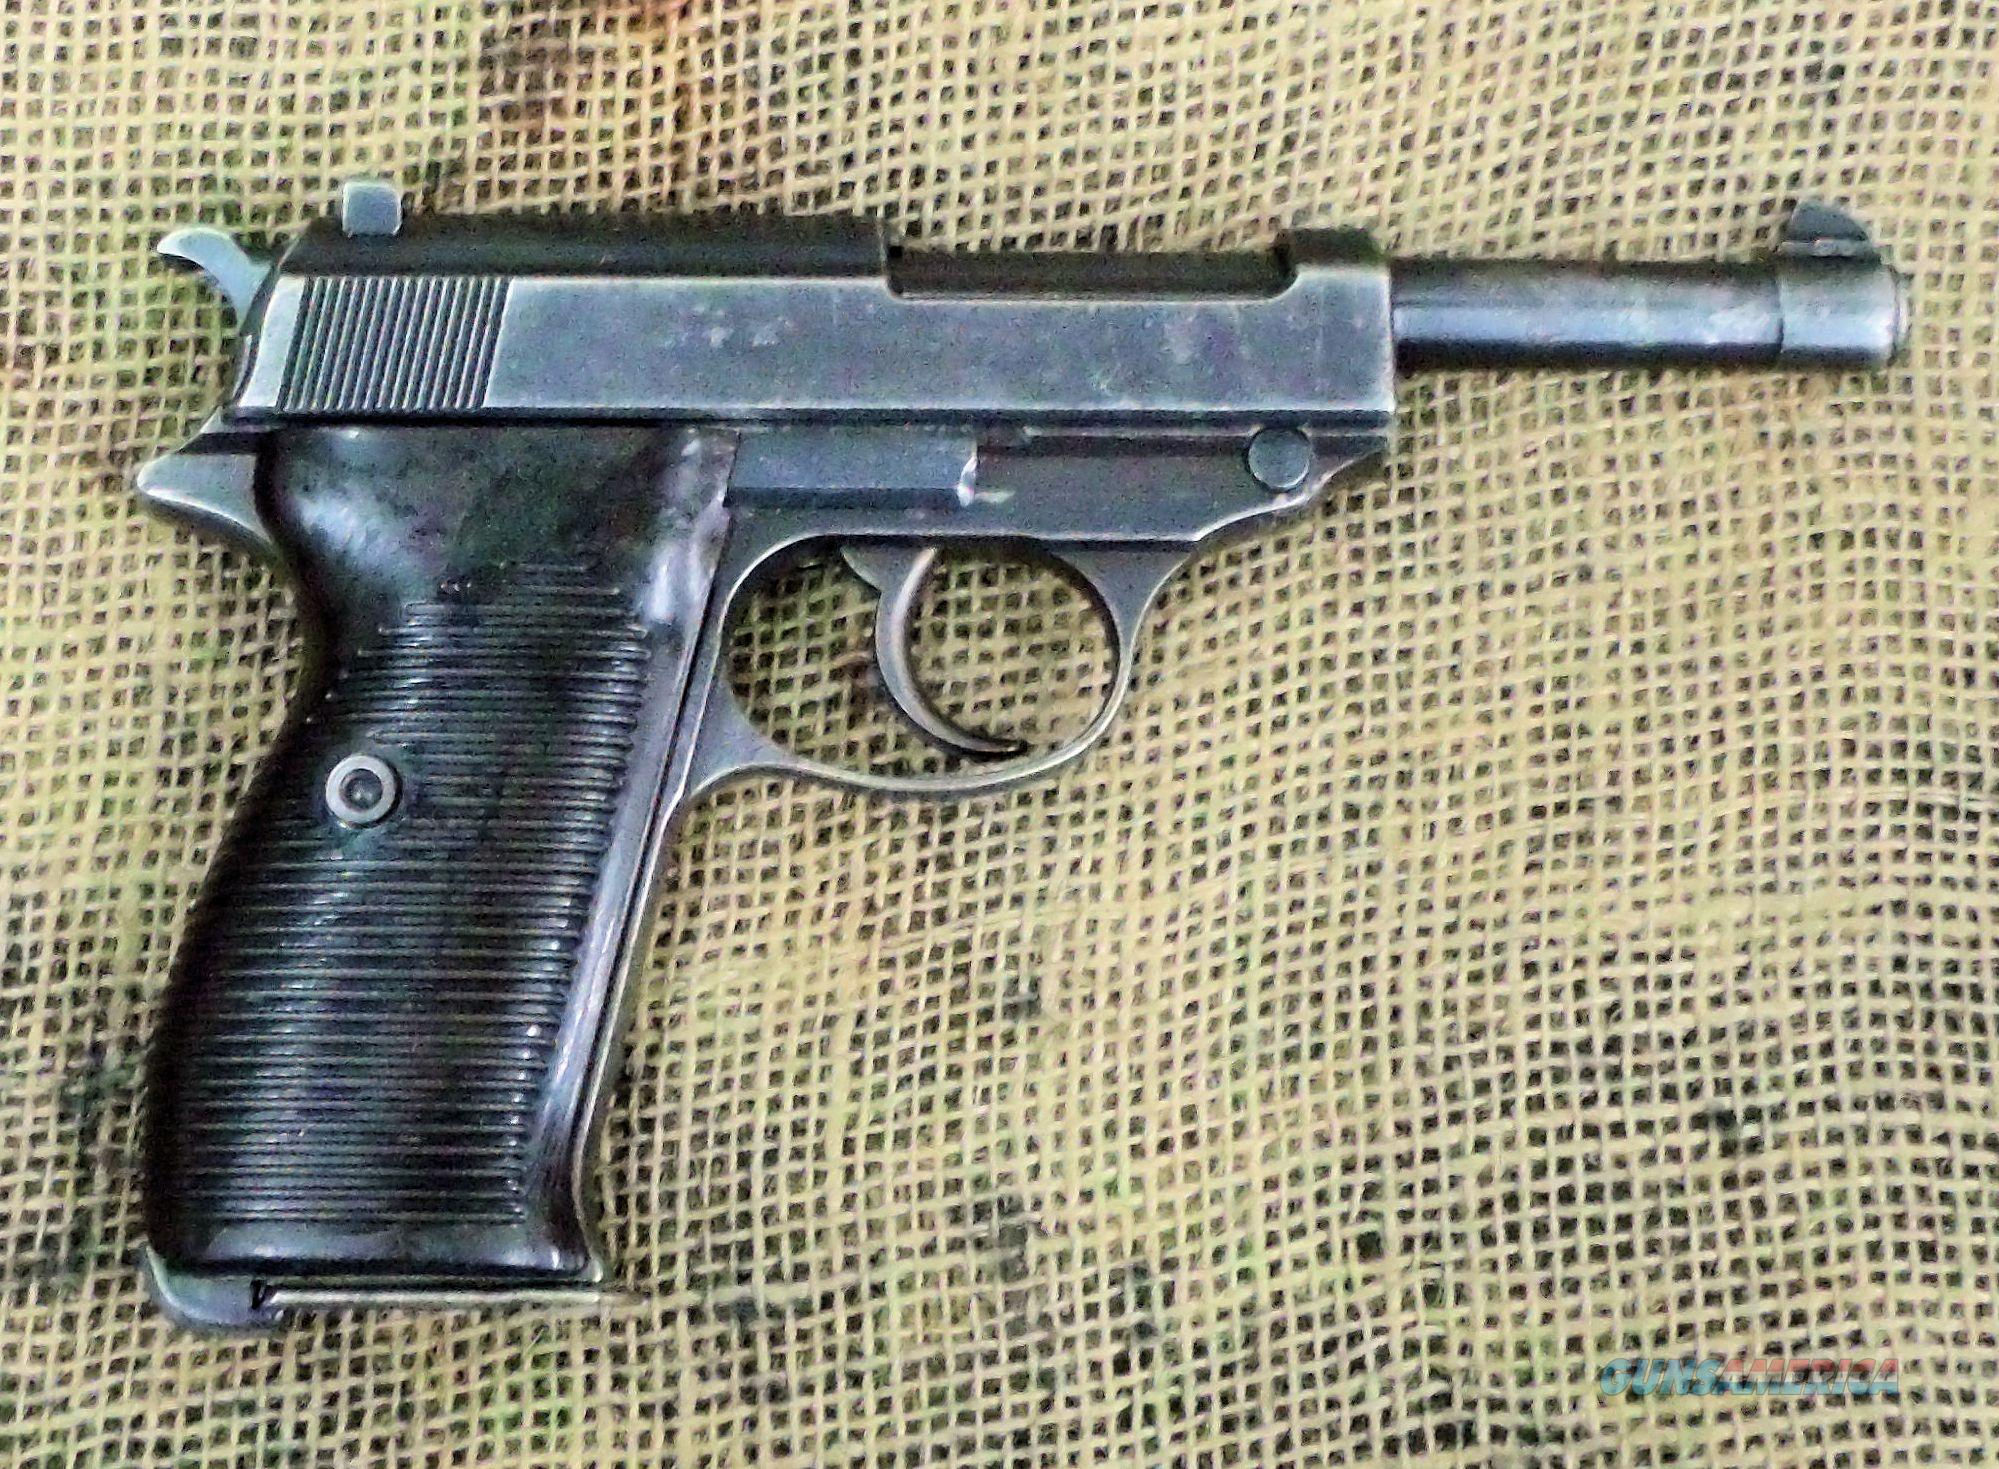 WALTHER(ac42) Model P38 Pistol, 9mm Cal.  Guns > Pistols > Walther Pistols > Pre-1945 > P-38